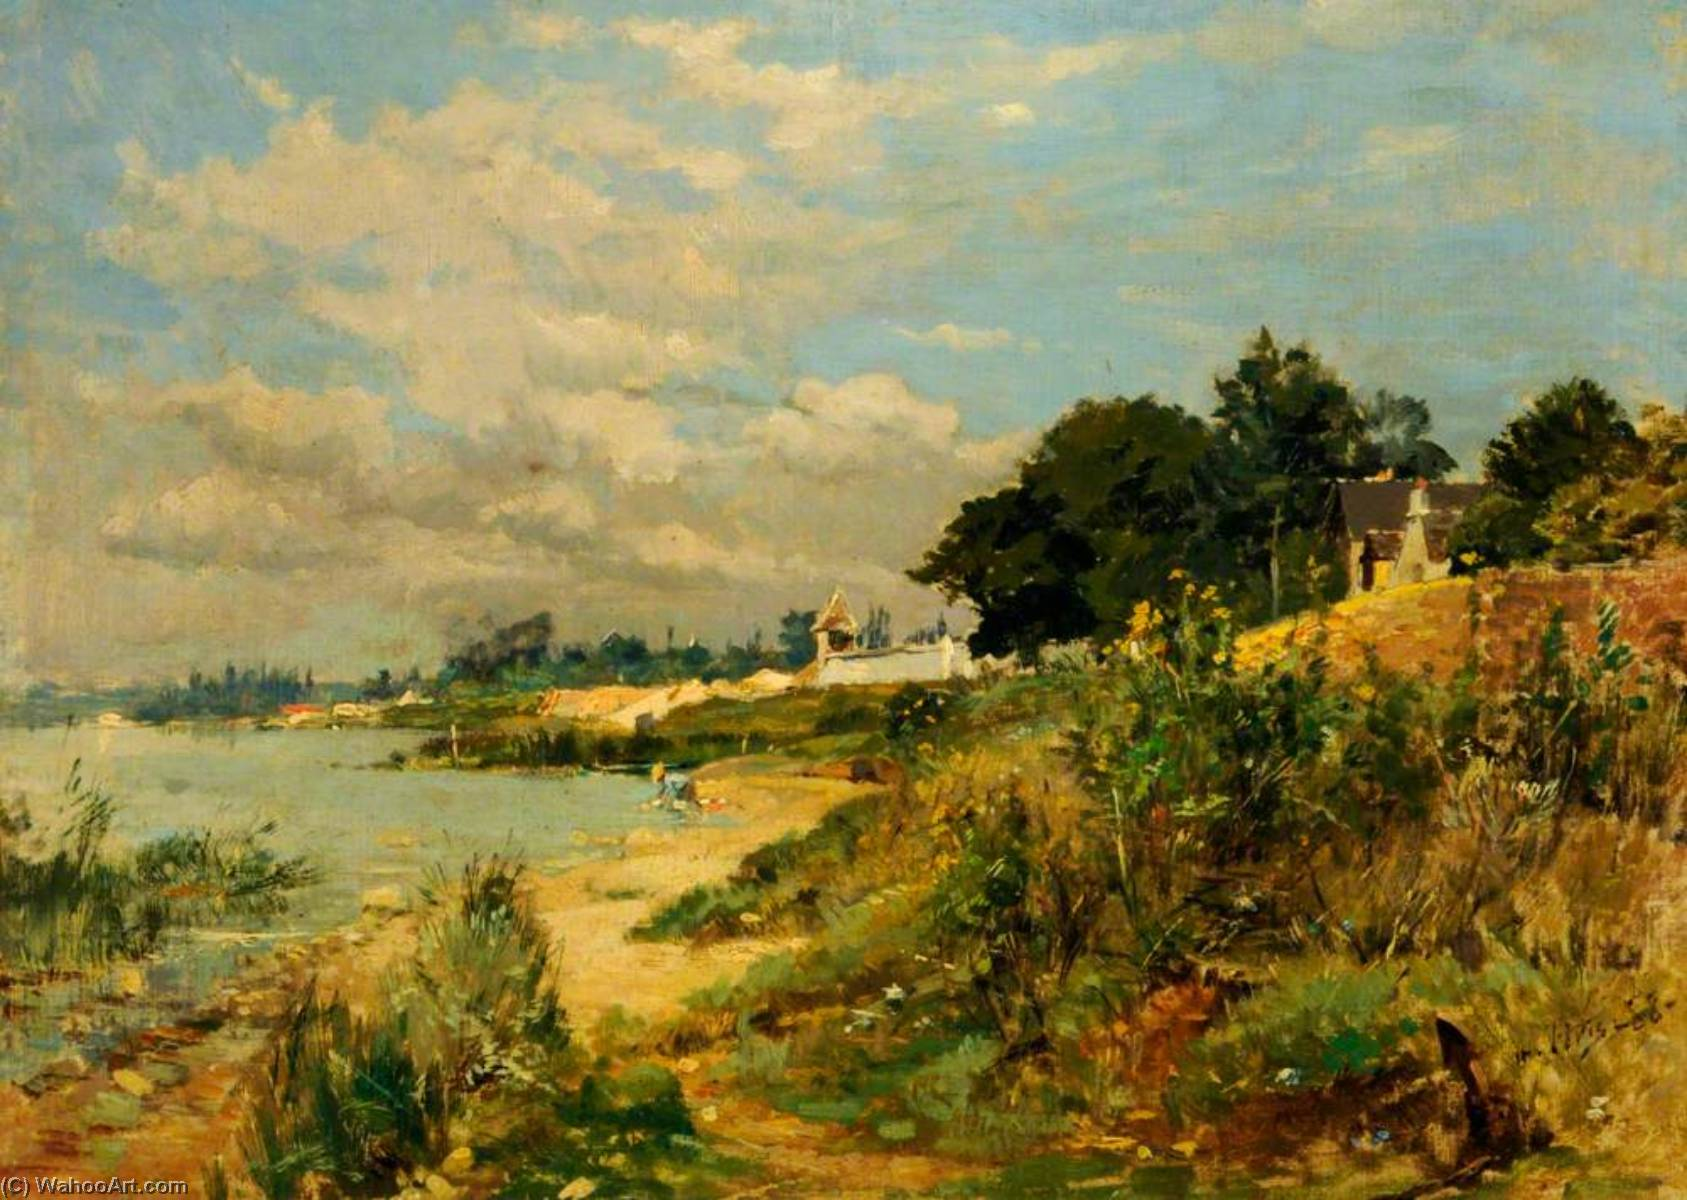 At Boutigny, France, Oil On Canvas by Maurice Levis (1860-1940)